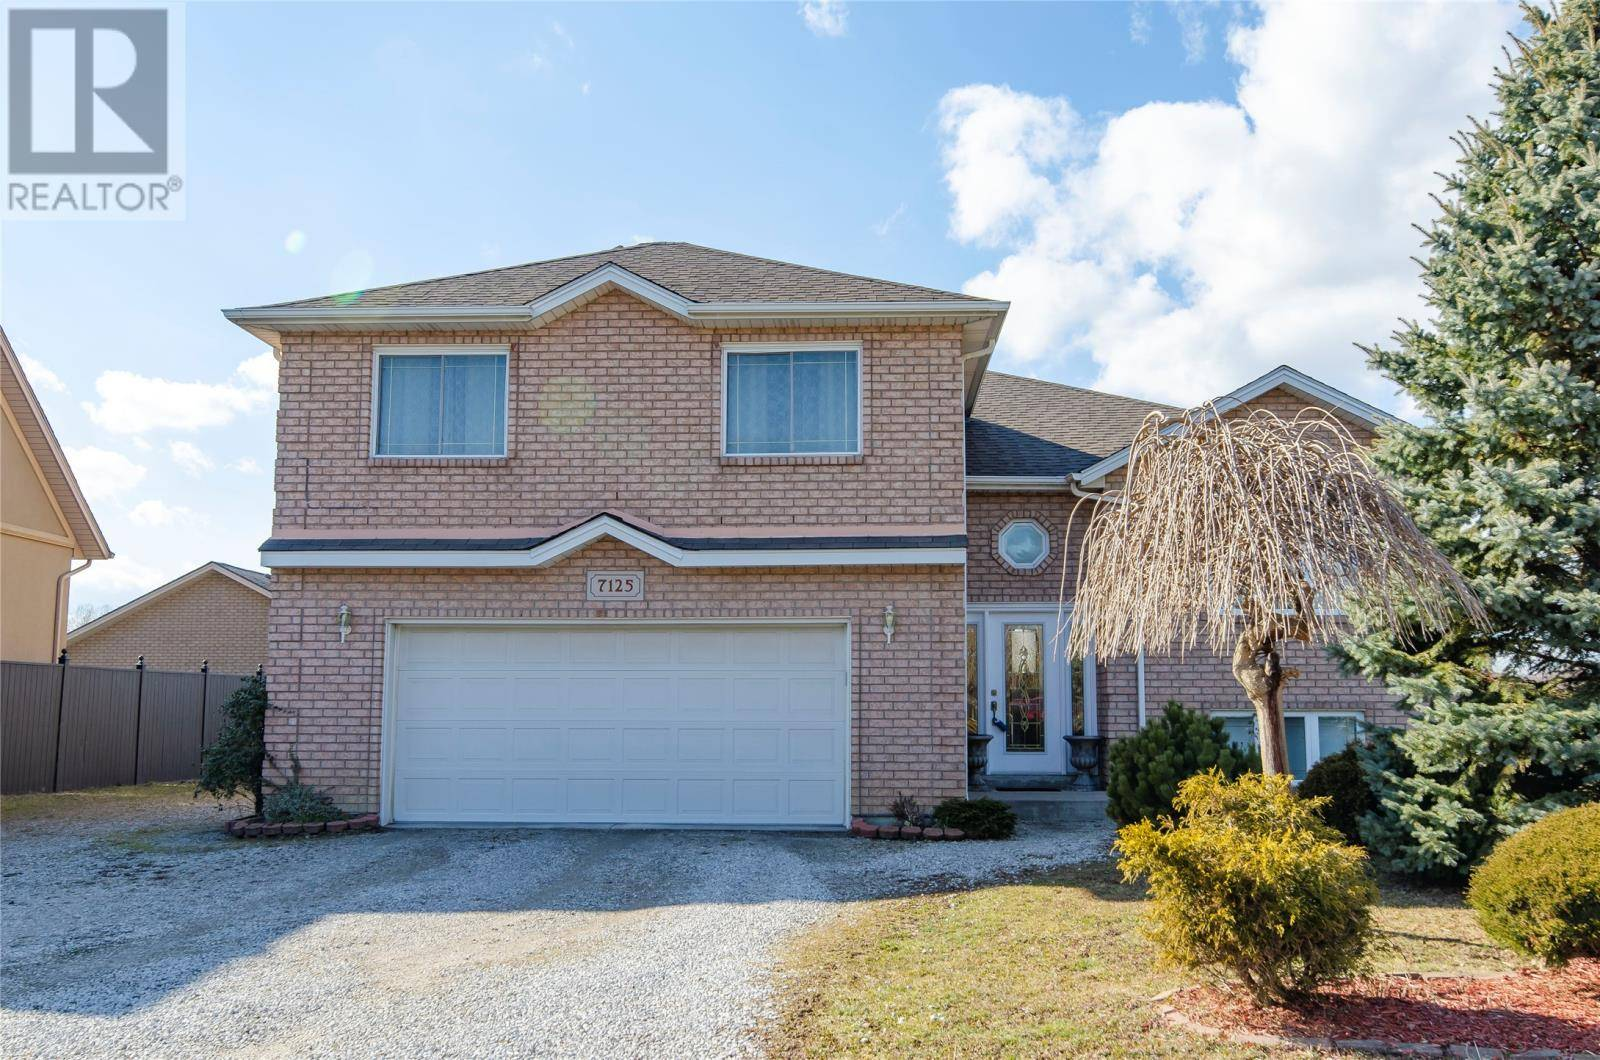 House for sale at 7125 Malden Rd Lasalle Ontario - MLS: 20002648